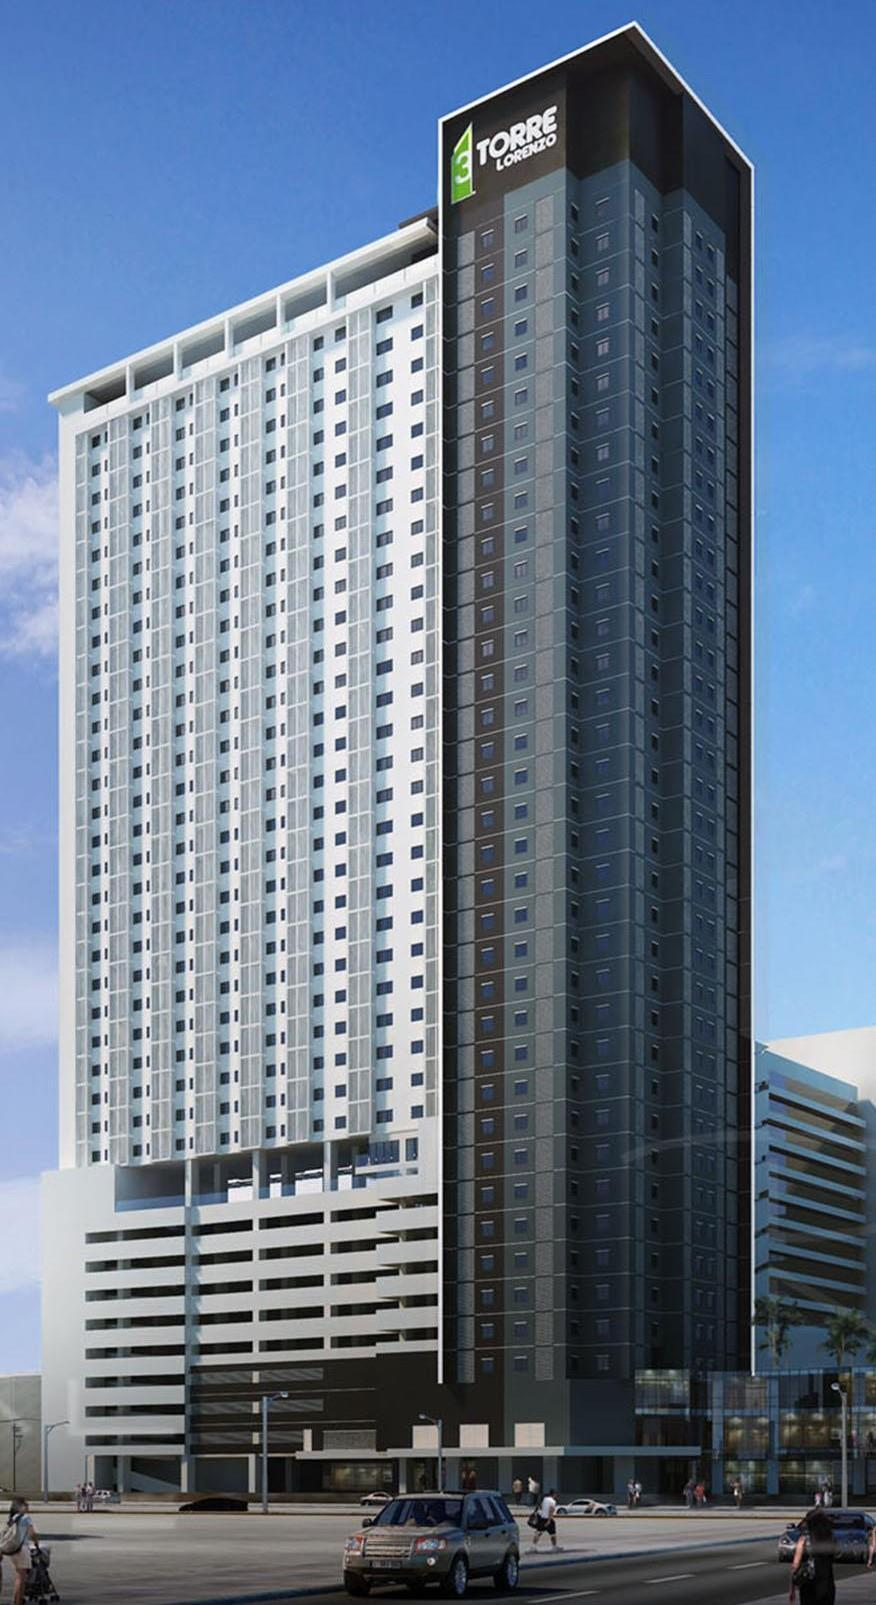 BUILDING Project OVERVIEW Overview SKY LOUNGE 8 TH P2 FLOORS - RESIDENTIAL LEVEL 7 AMENITY &